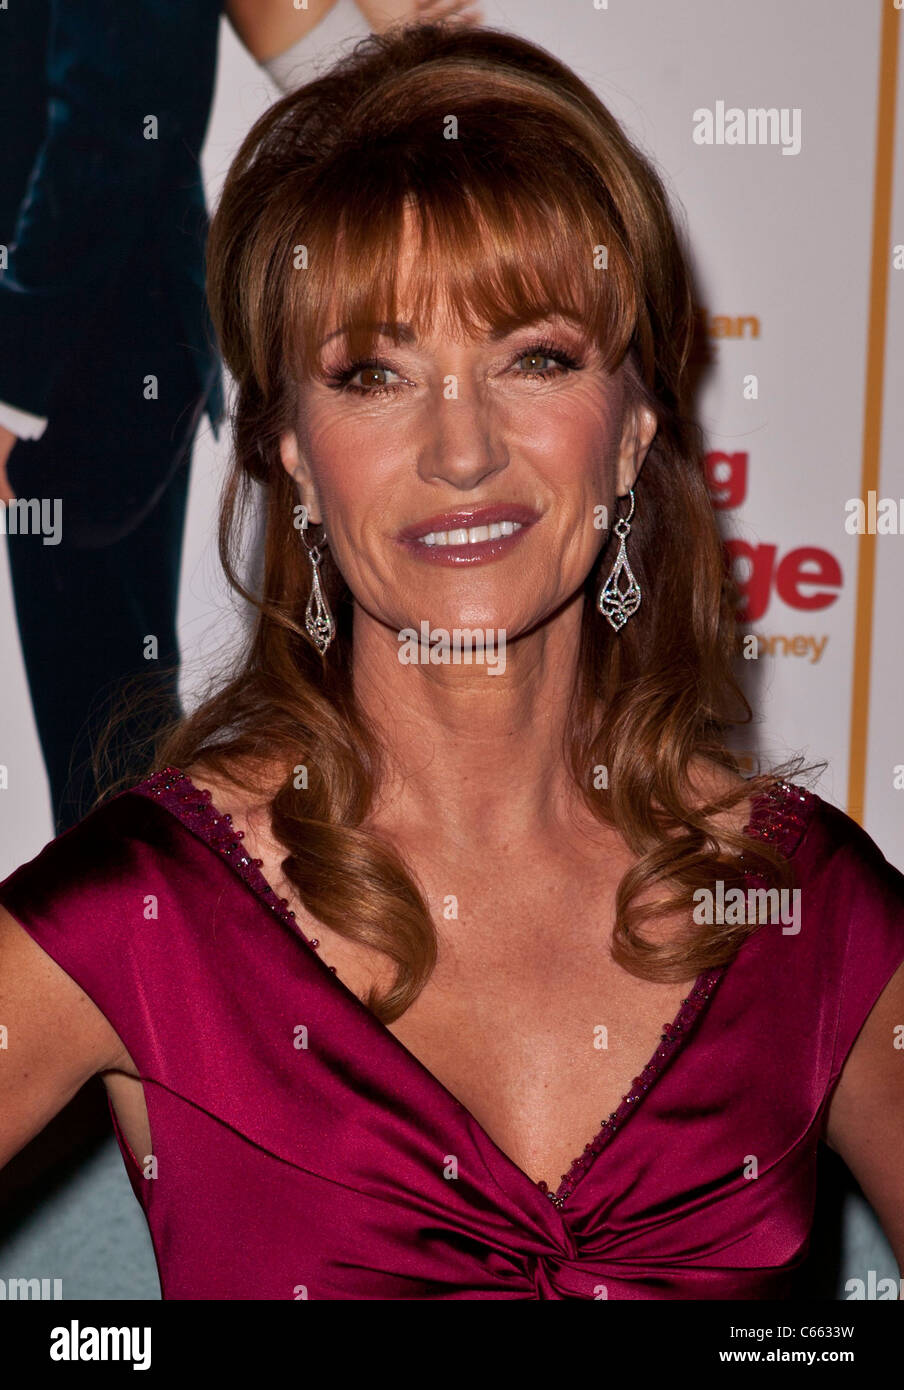 Jane Seymour at arrivals for LOVE WEDDING MARRIAGE Premiere, Pacific Design Center, Los Angeles, CA May 17, 2011. Stock Photo